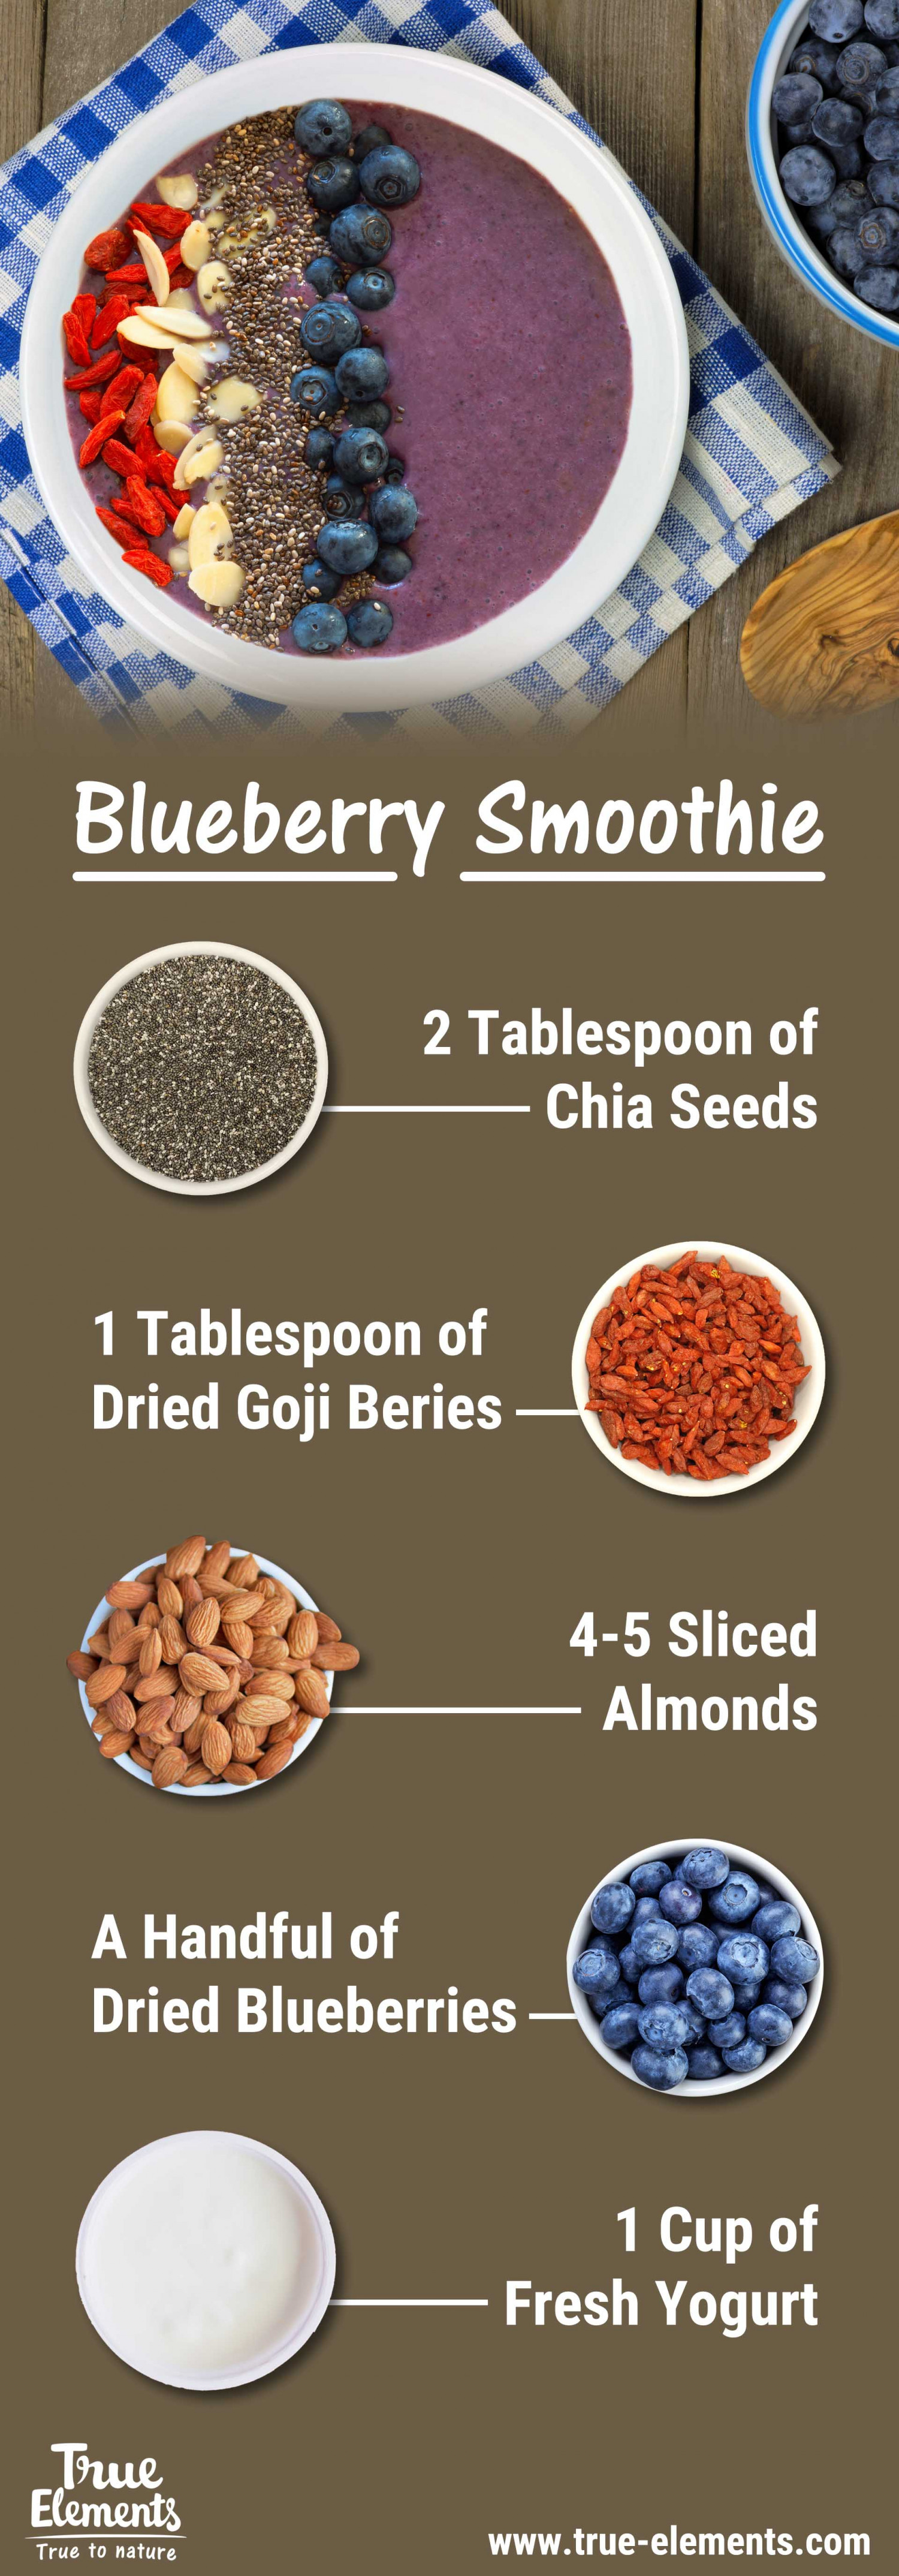 Blueberry Smoothie Infographic